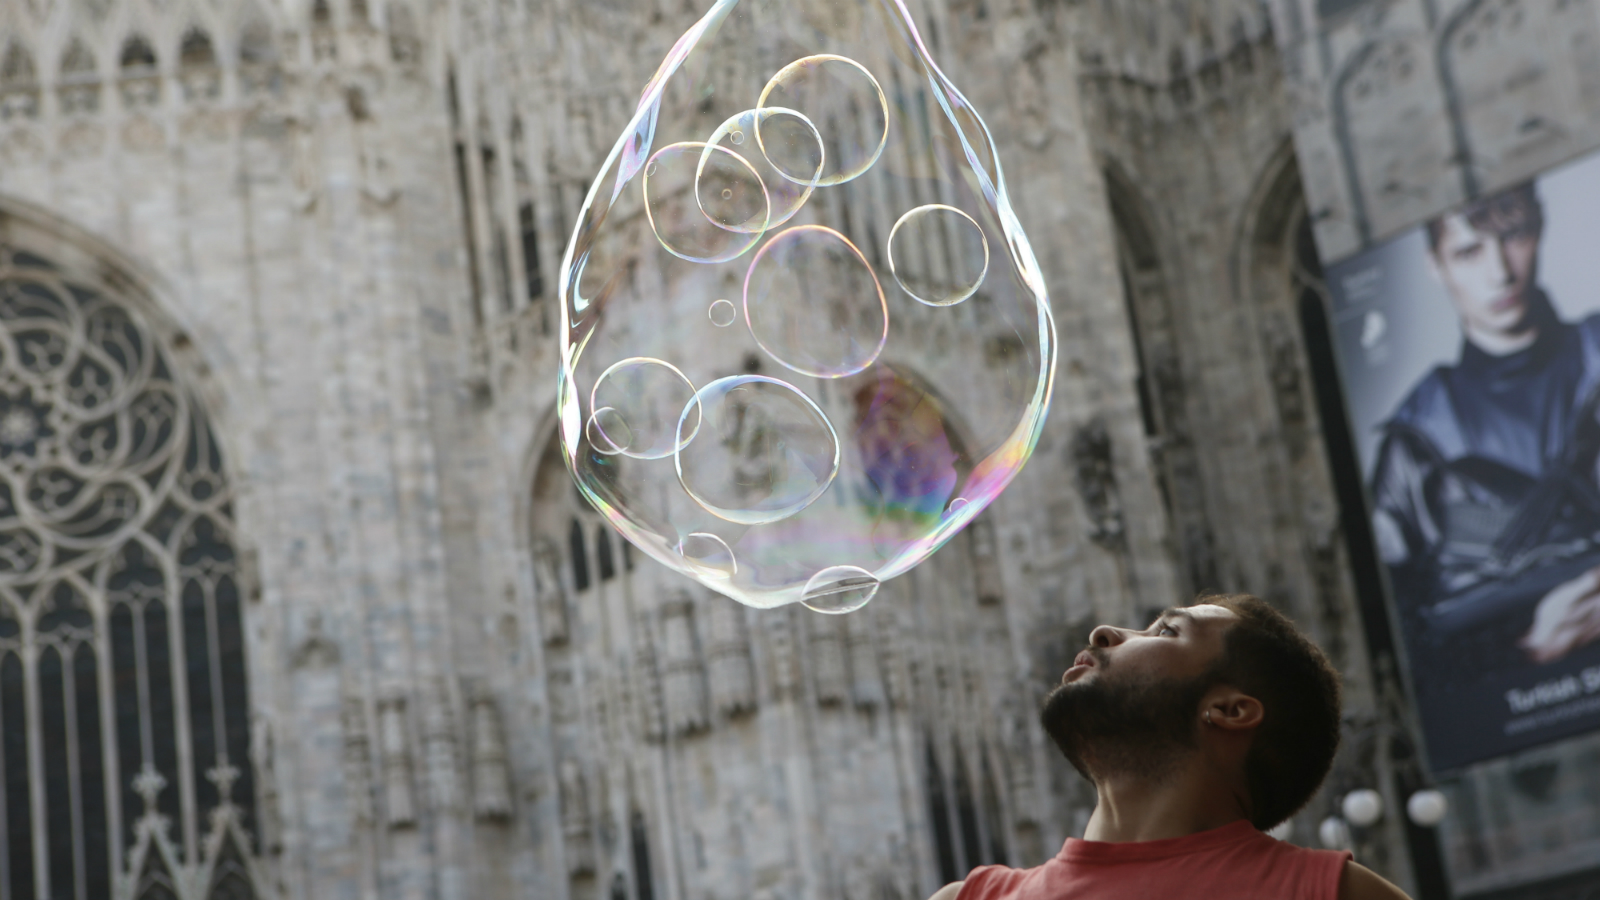 A street artist performs with soap bubbles in front of the Duomo gothic cathedral, in Milan, Italy, Tuesday, Oct. 20, 2015. (AP Photo/Luca Bruno)